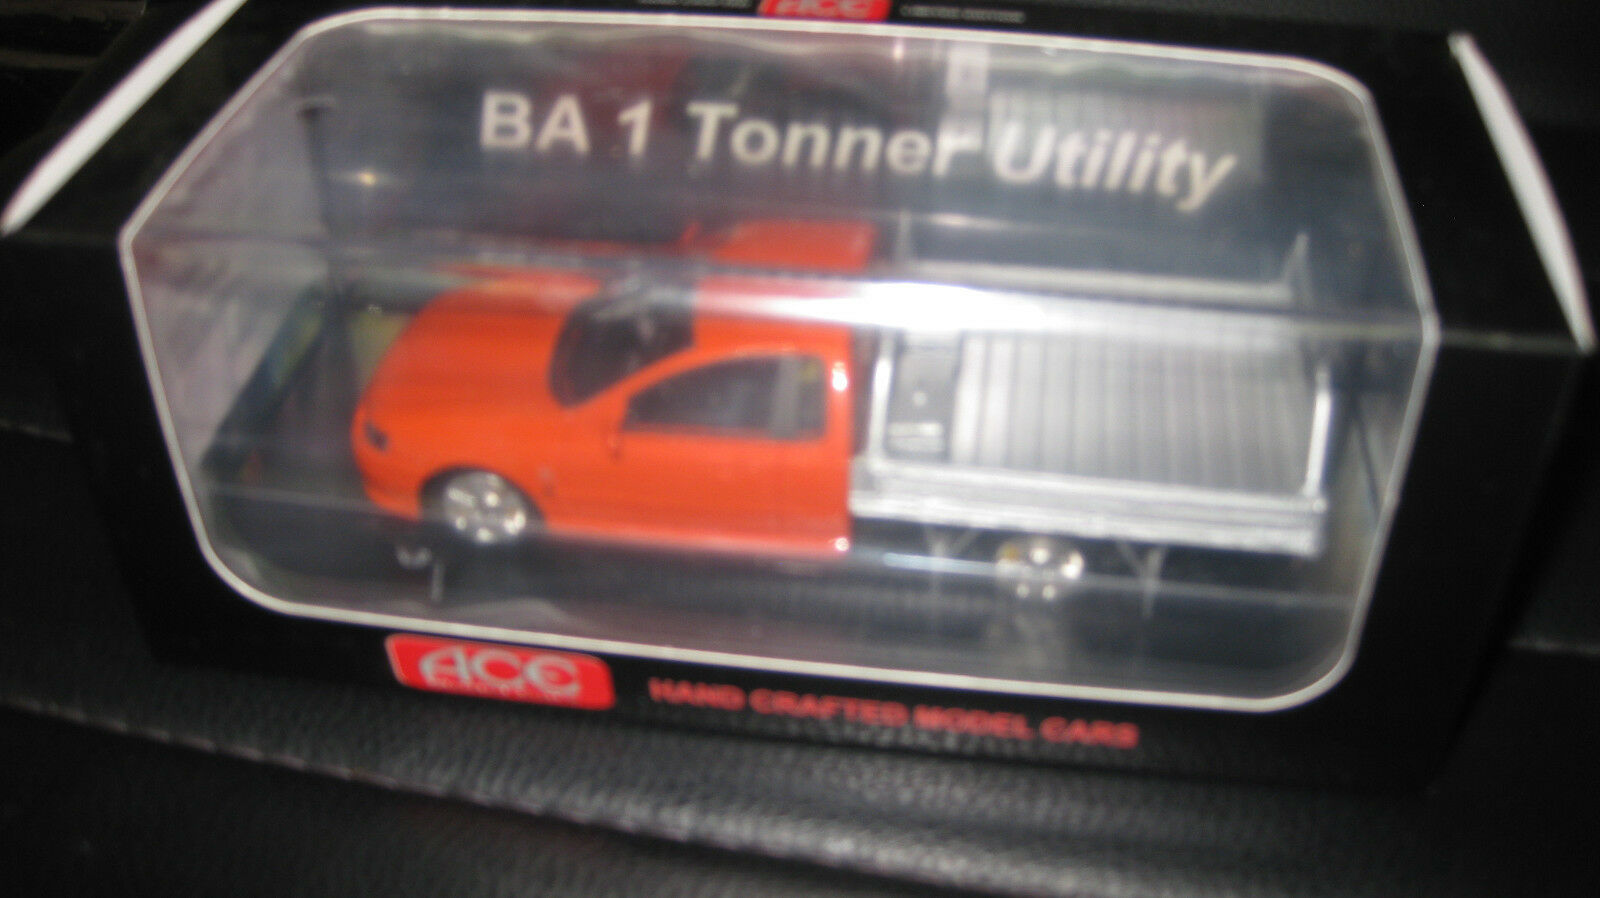 1 43 ACE MODEL CARS FORD FALCON BA 1 TONNER UTE BLOOD orange LTD EDITION